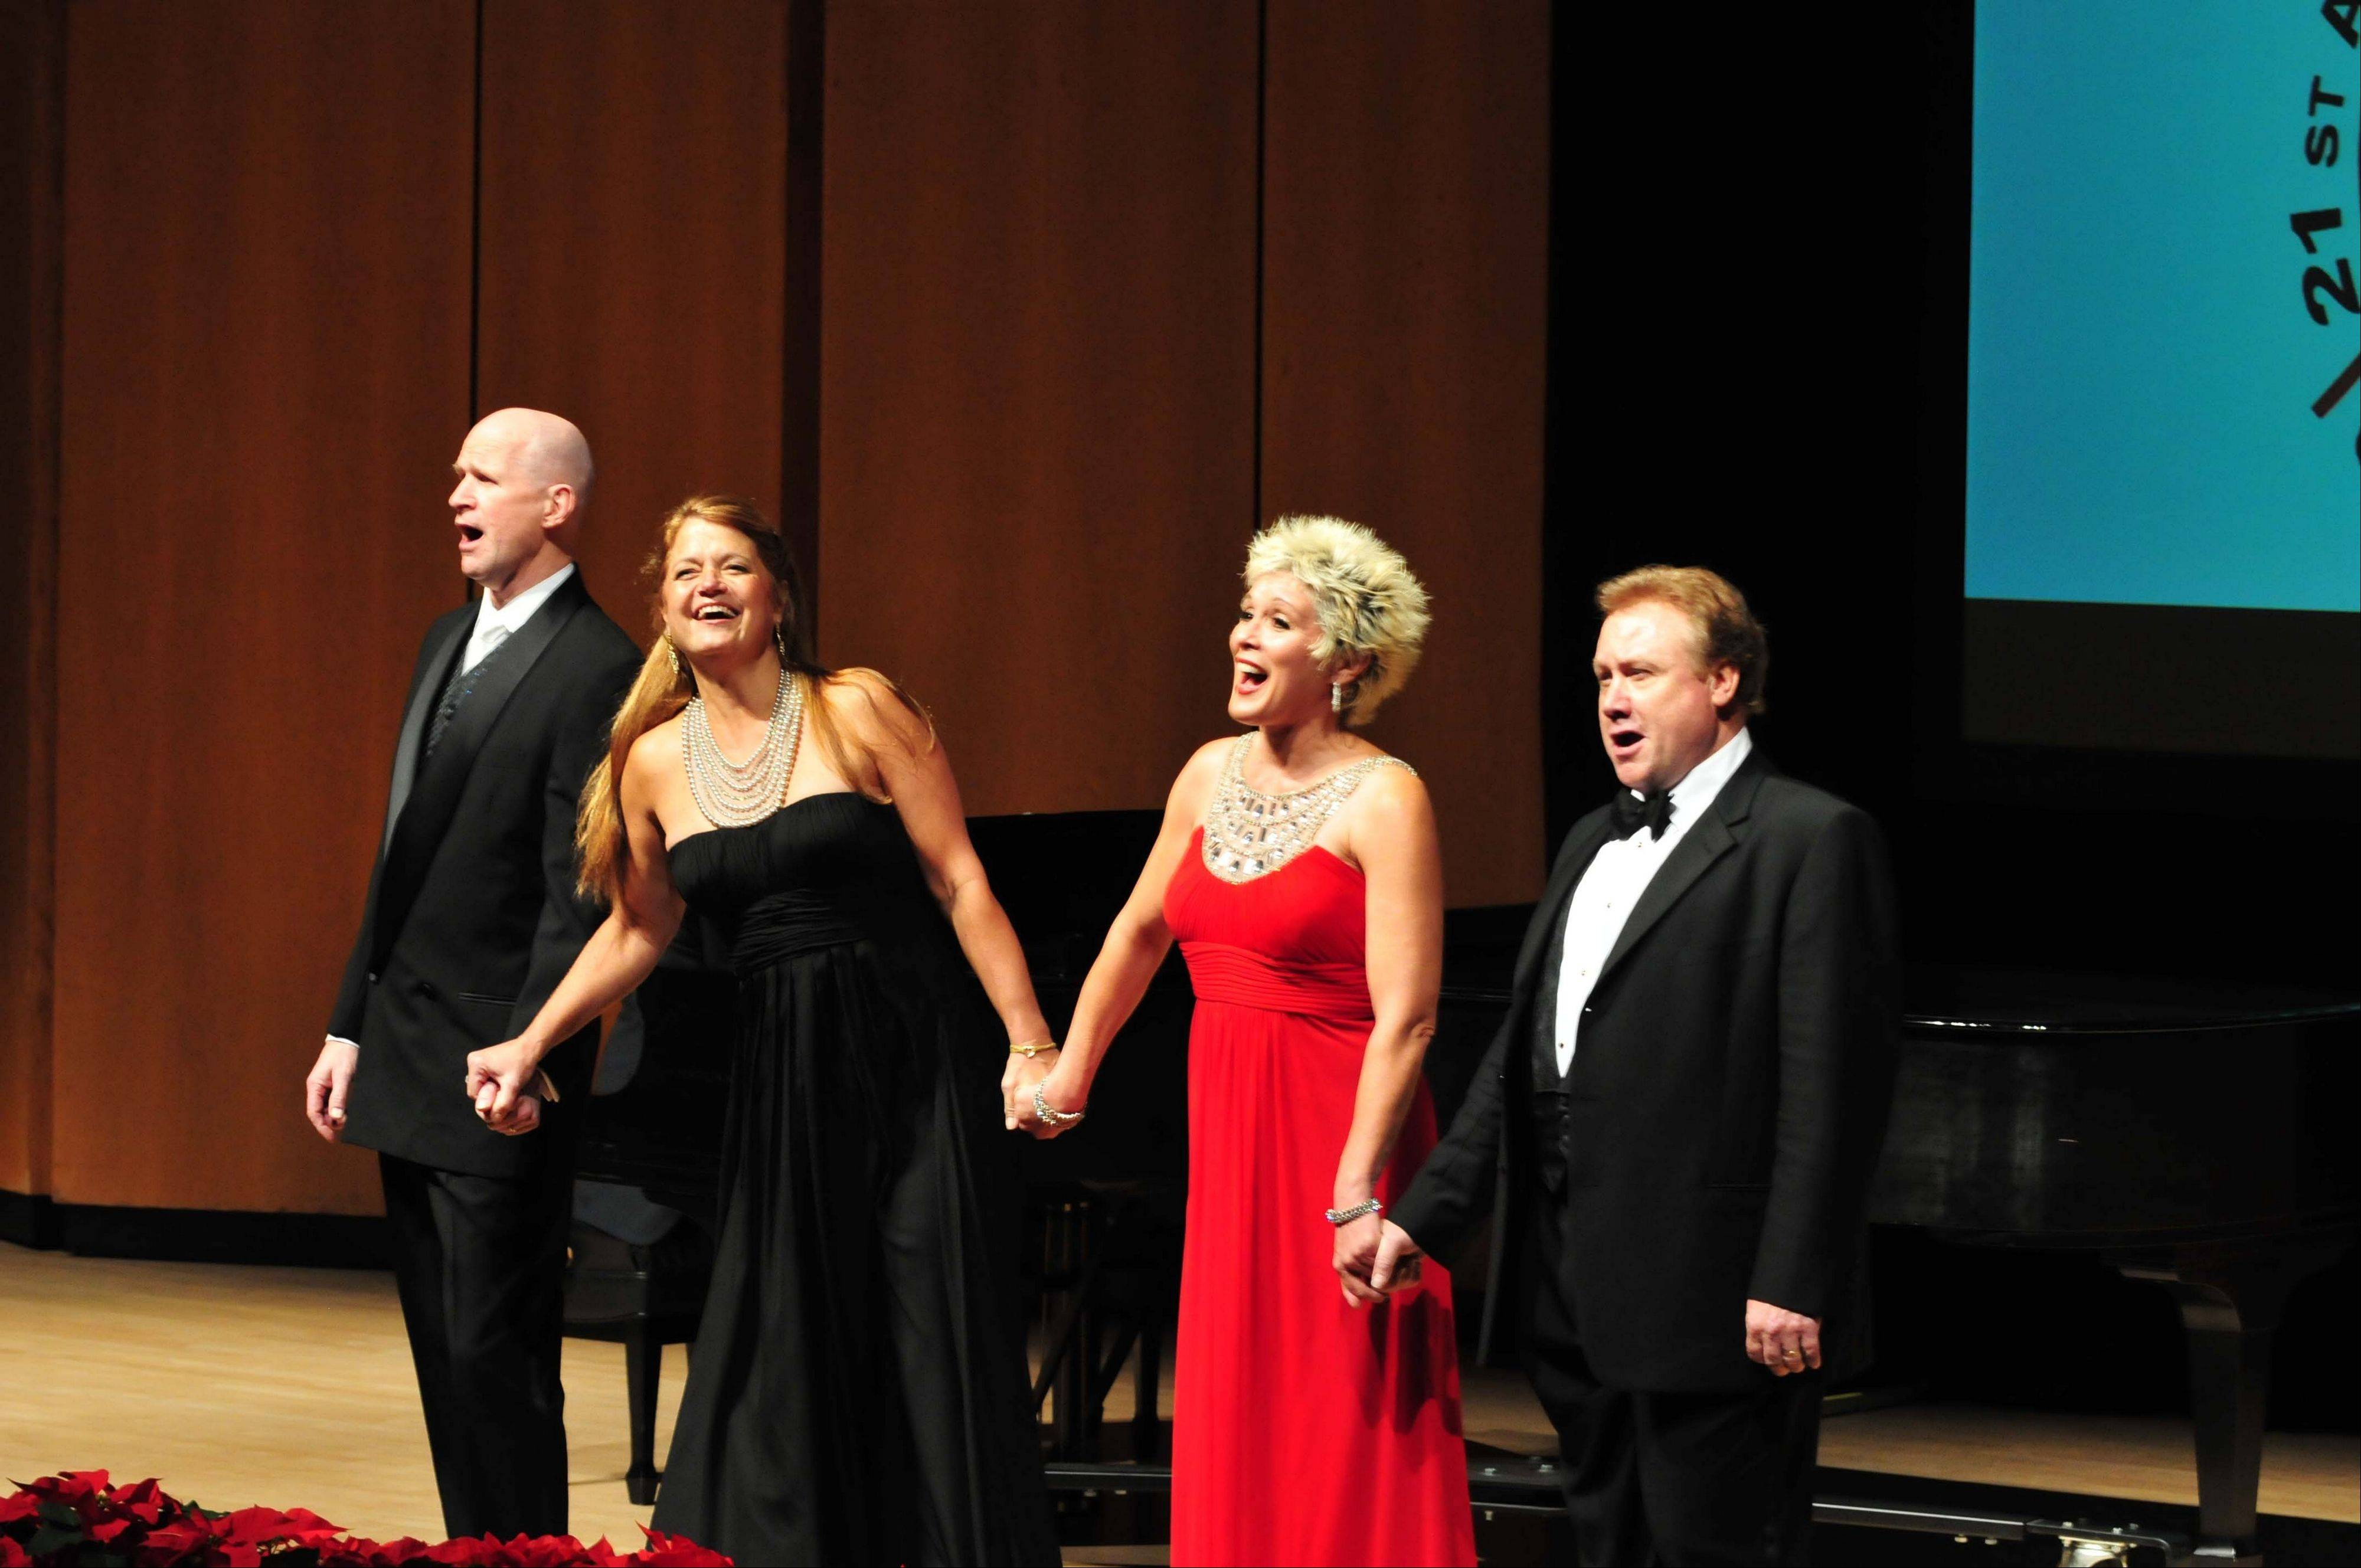 Evanston native and opera singer Nancy Gustafson, second from left, will perform with other opera stars as part of the Over the Rainbow Association's 22nd Anniversary Celebration Benefit Concert.